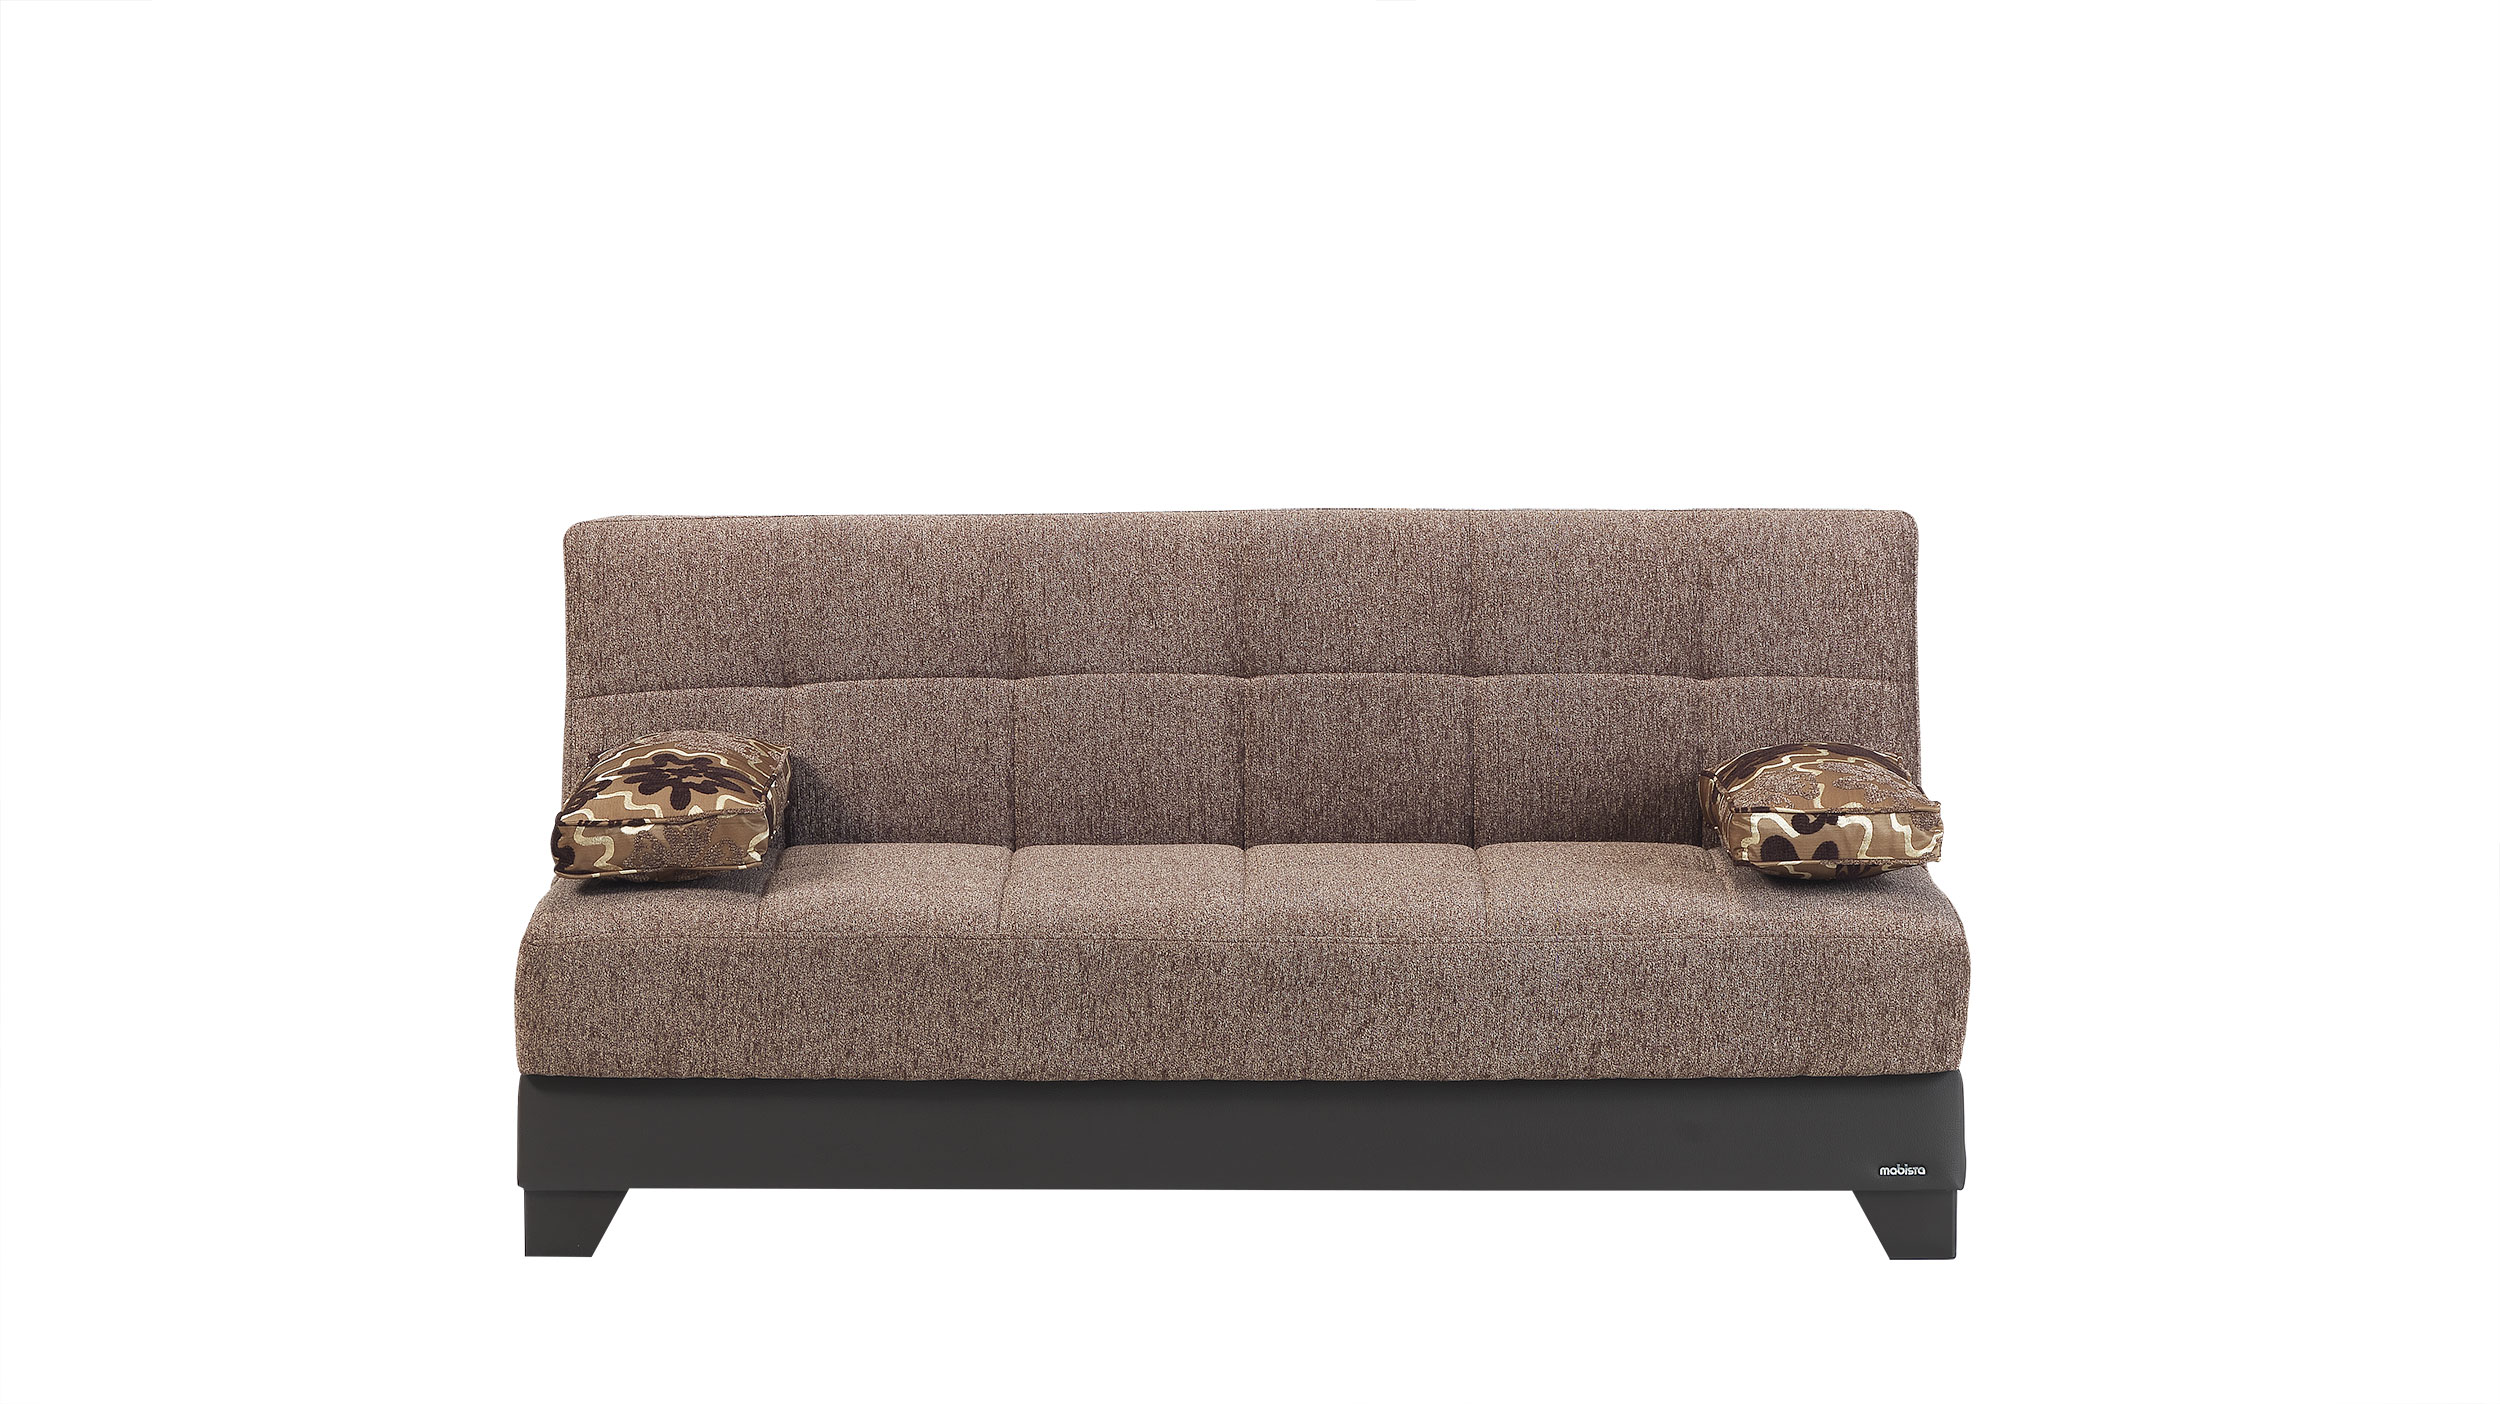 Inter mebel dulce brown sofa bed by mobista for Sofa bed name